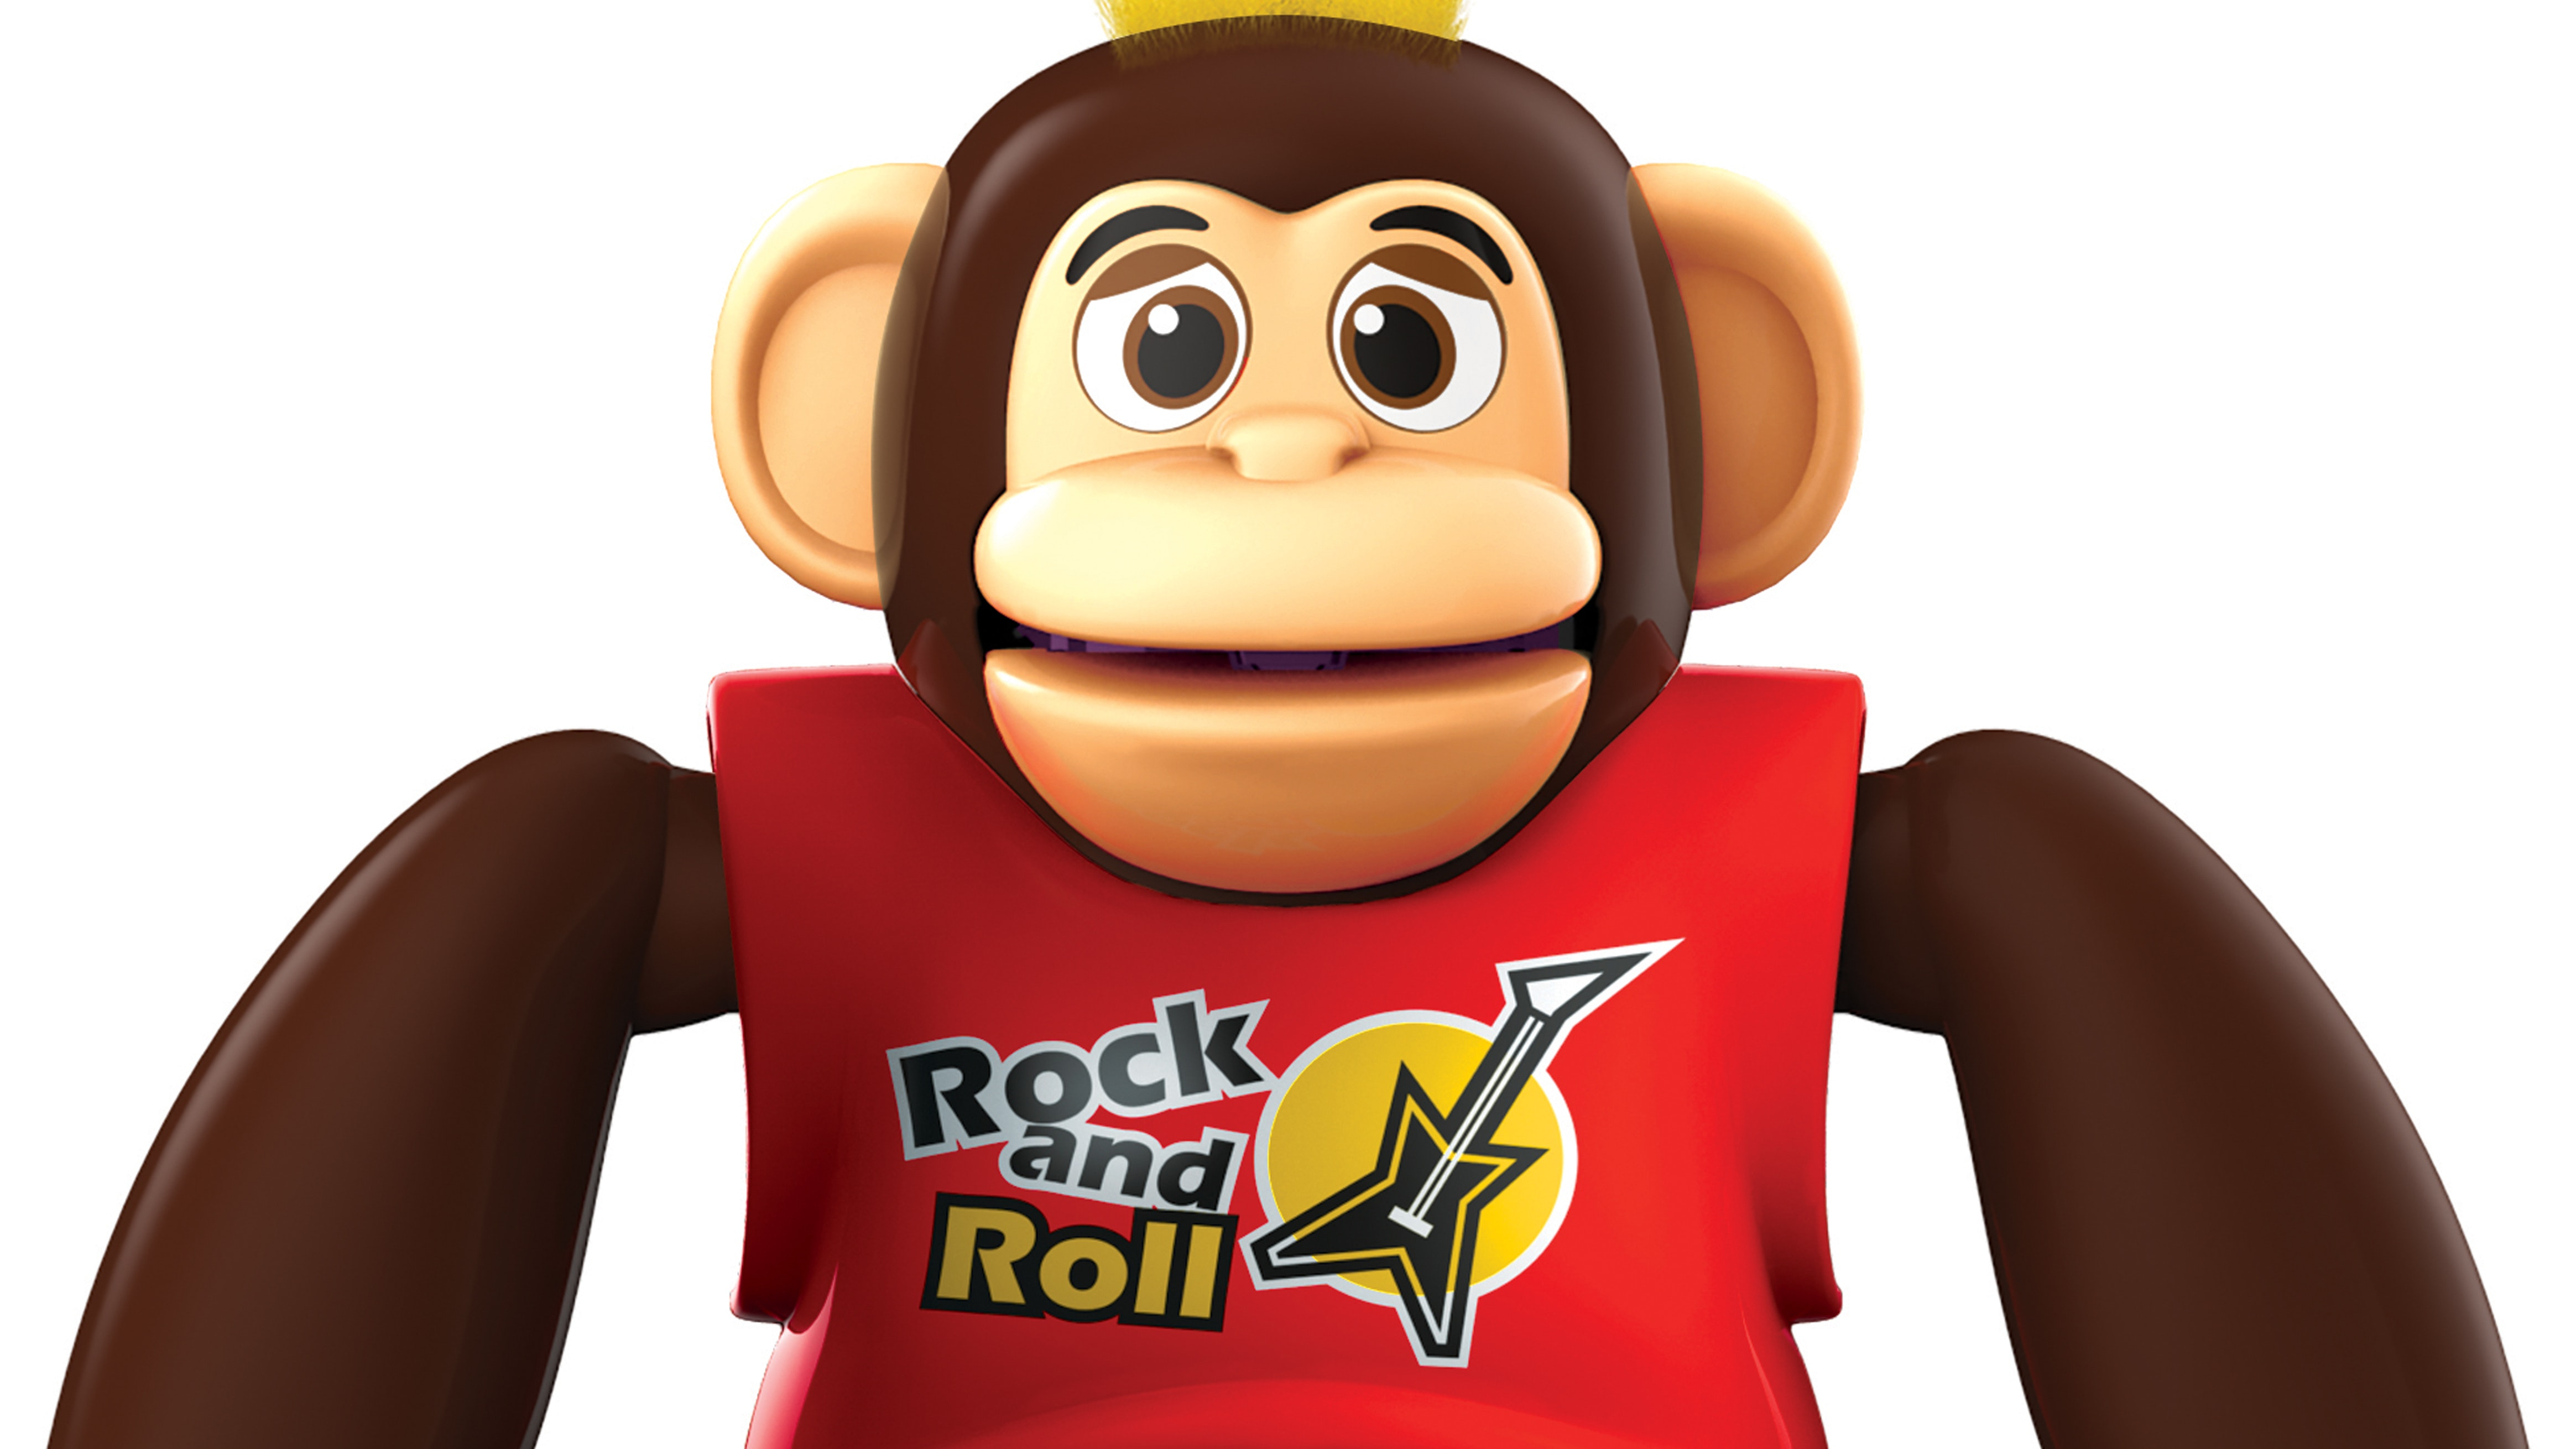 Lego Movie Kit And Rock Chimp Among Top Treats At Toy Fair Bt